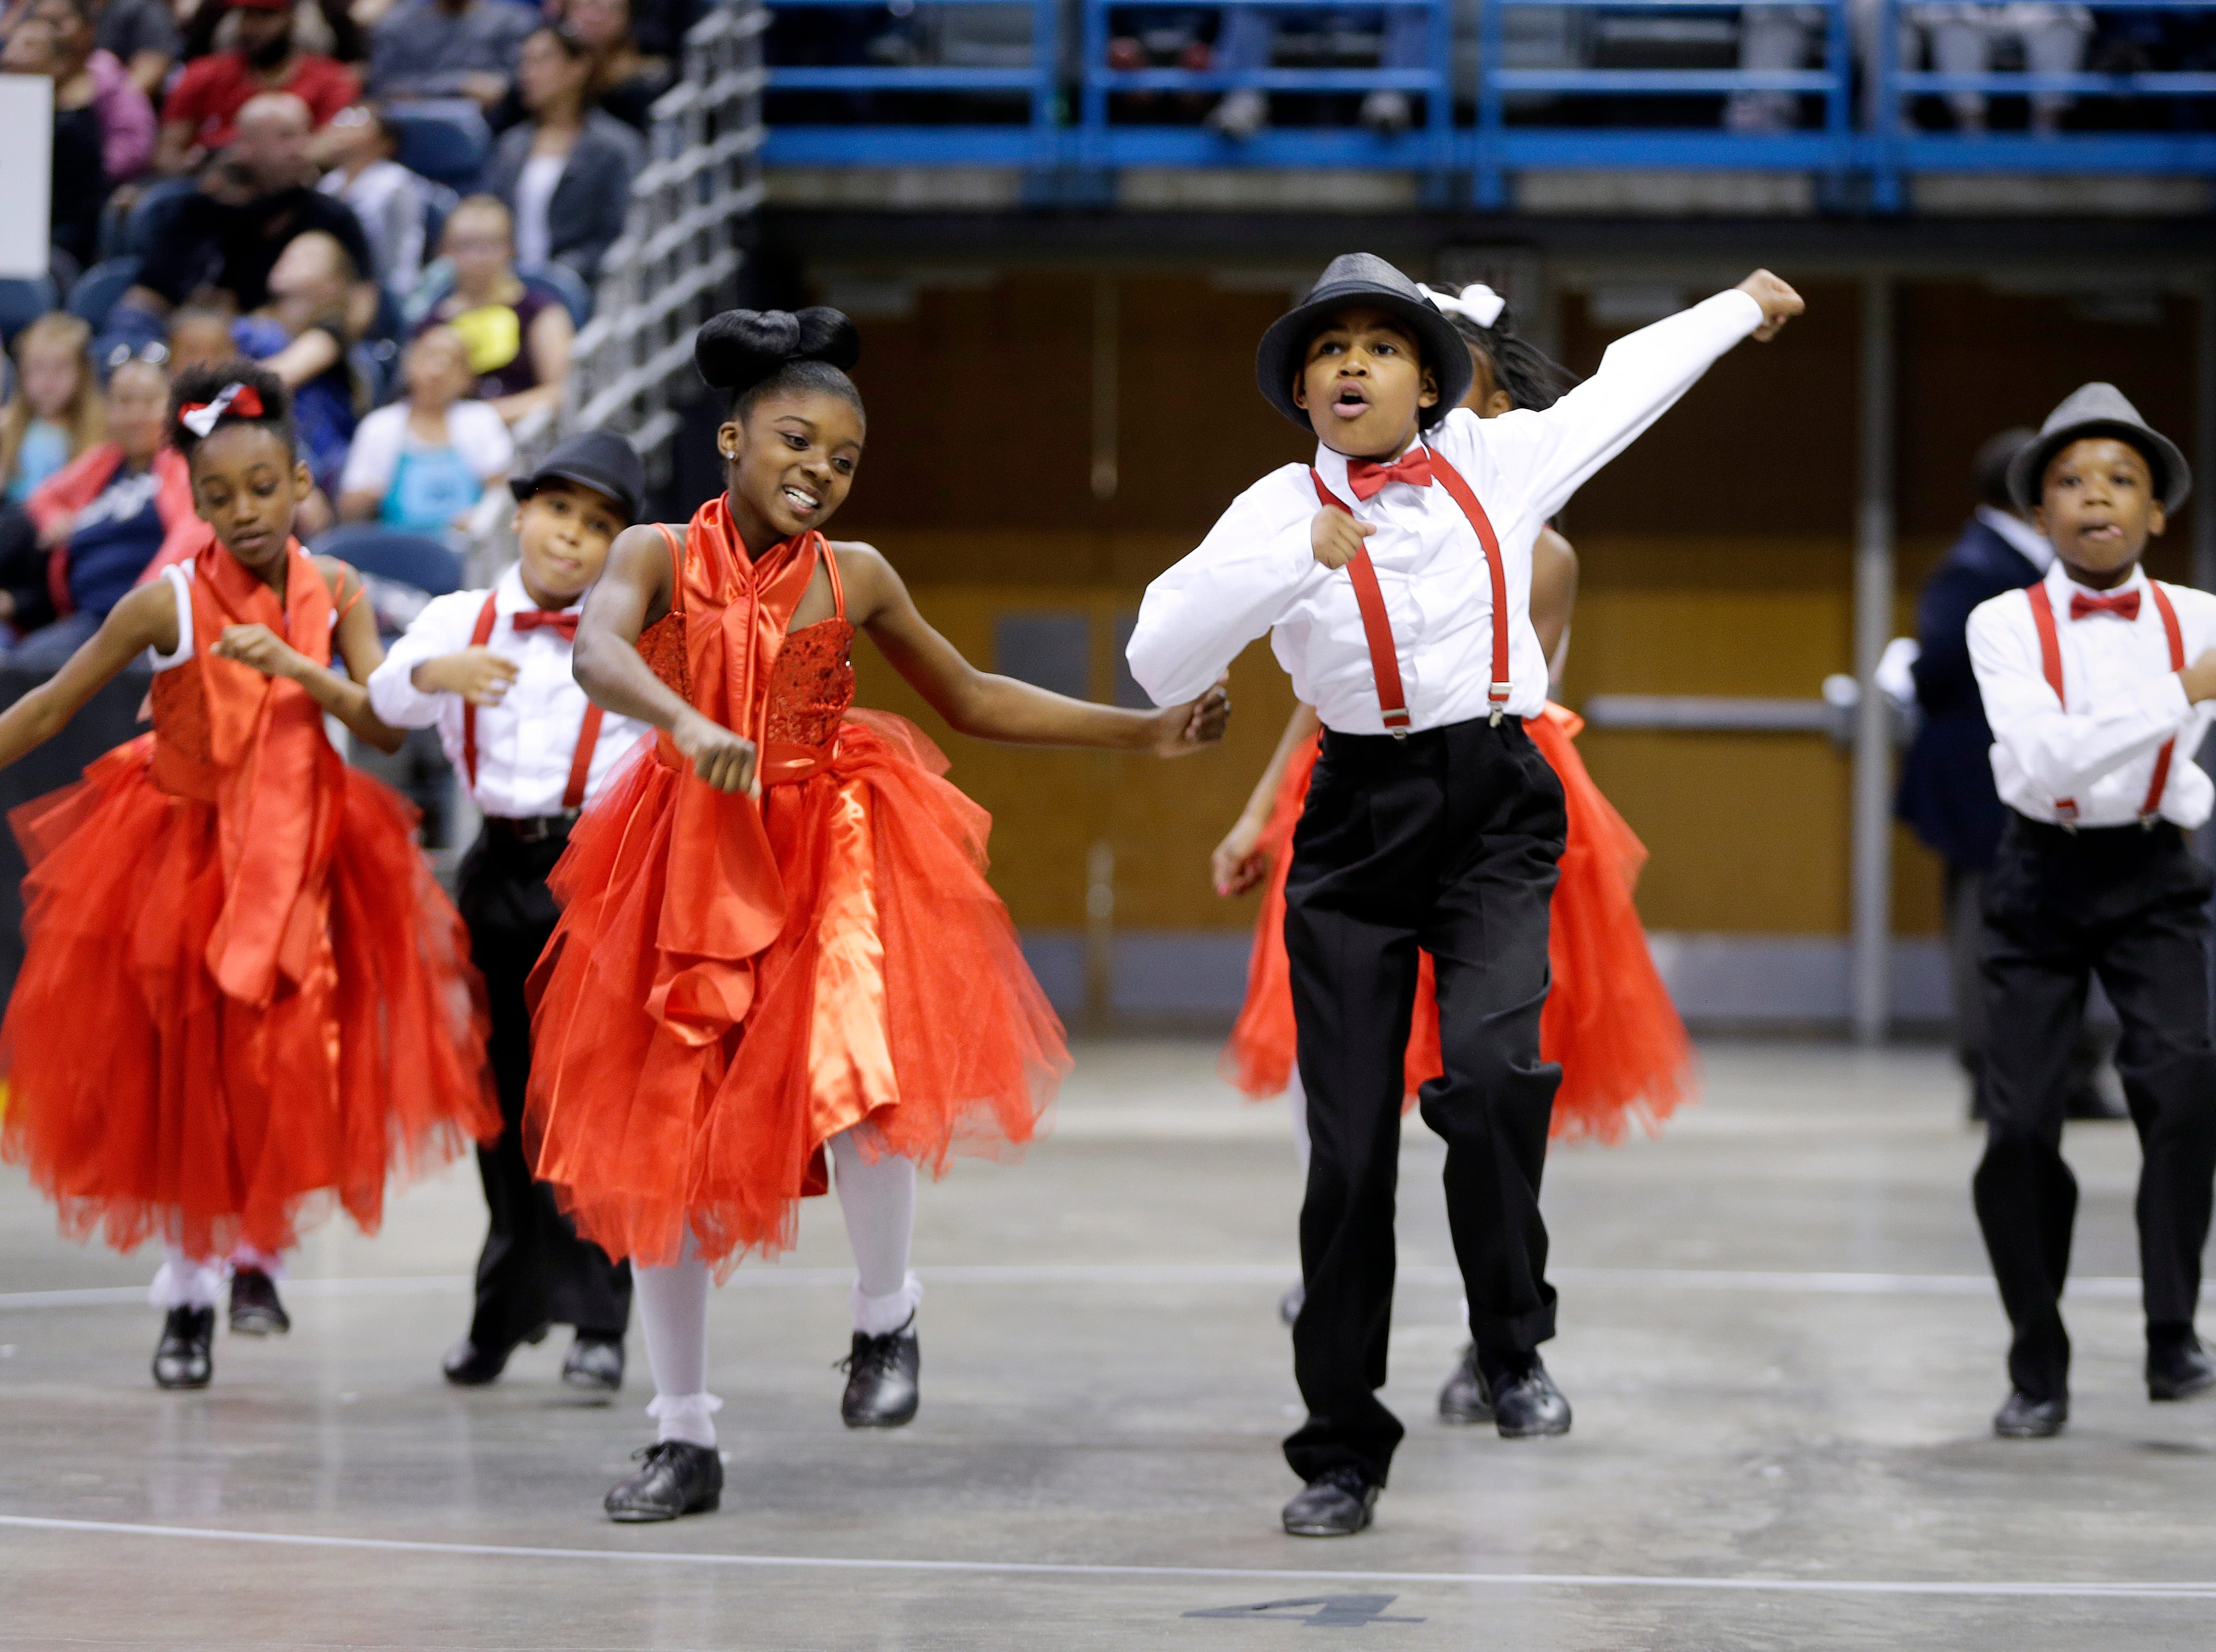 2016: Montana Love (left), Emeillio Daz (back left), Shawntyona Jones, Davell Costillio (center), Sarray Phillips and Eavonie Variott, (back right), all 10 year-old  students at Kilbourn Elementary School, perform swing dancing during the annual Mad Hot Ballroom and Tap competition at the BMO Harris Bradley Center.